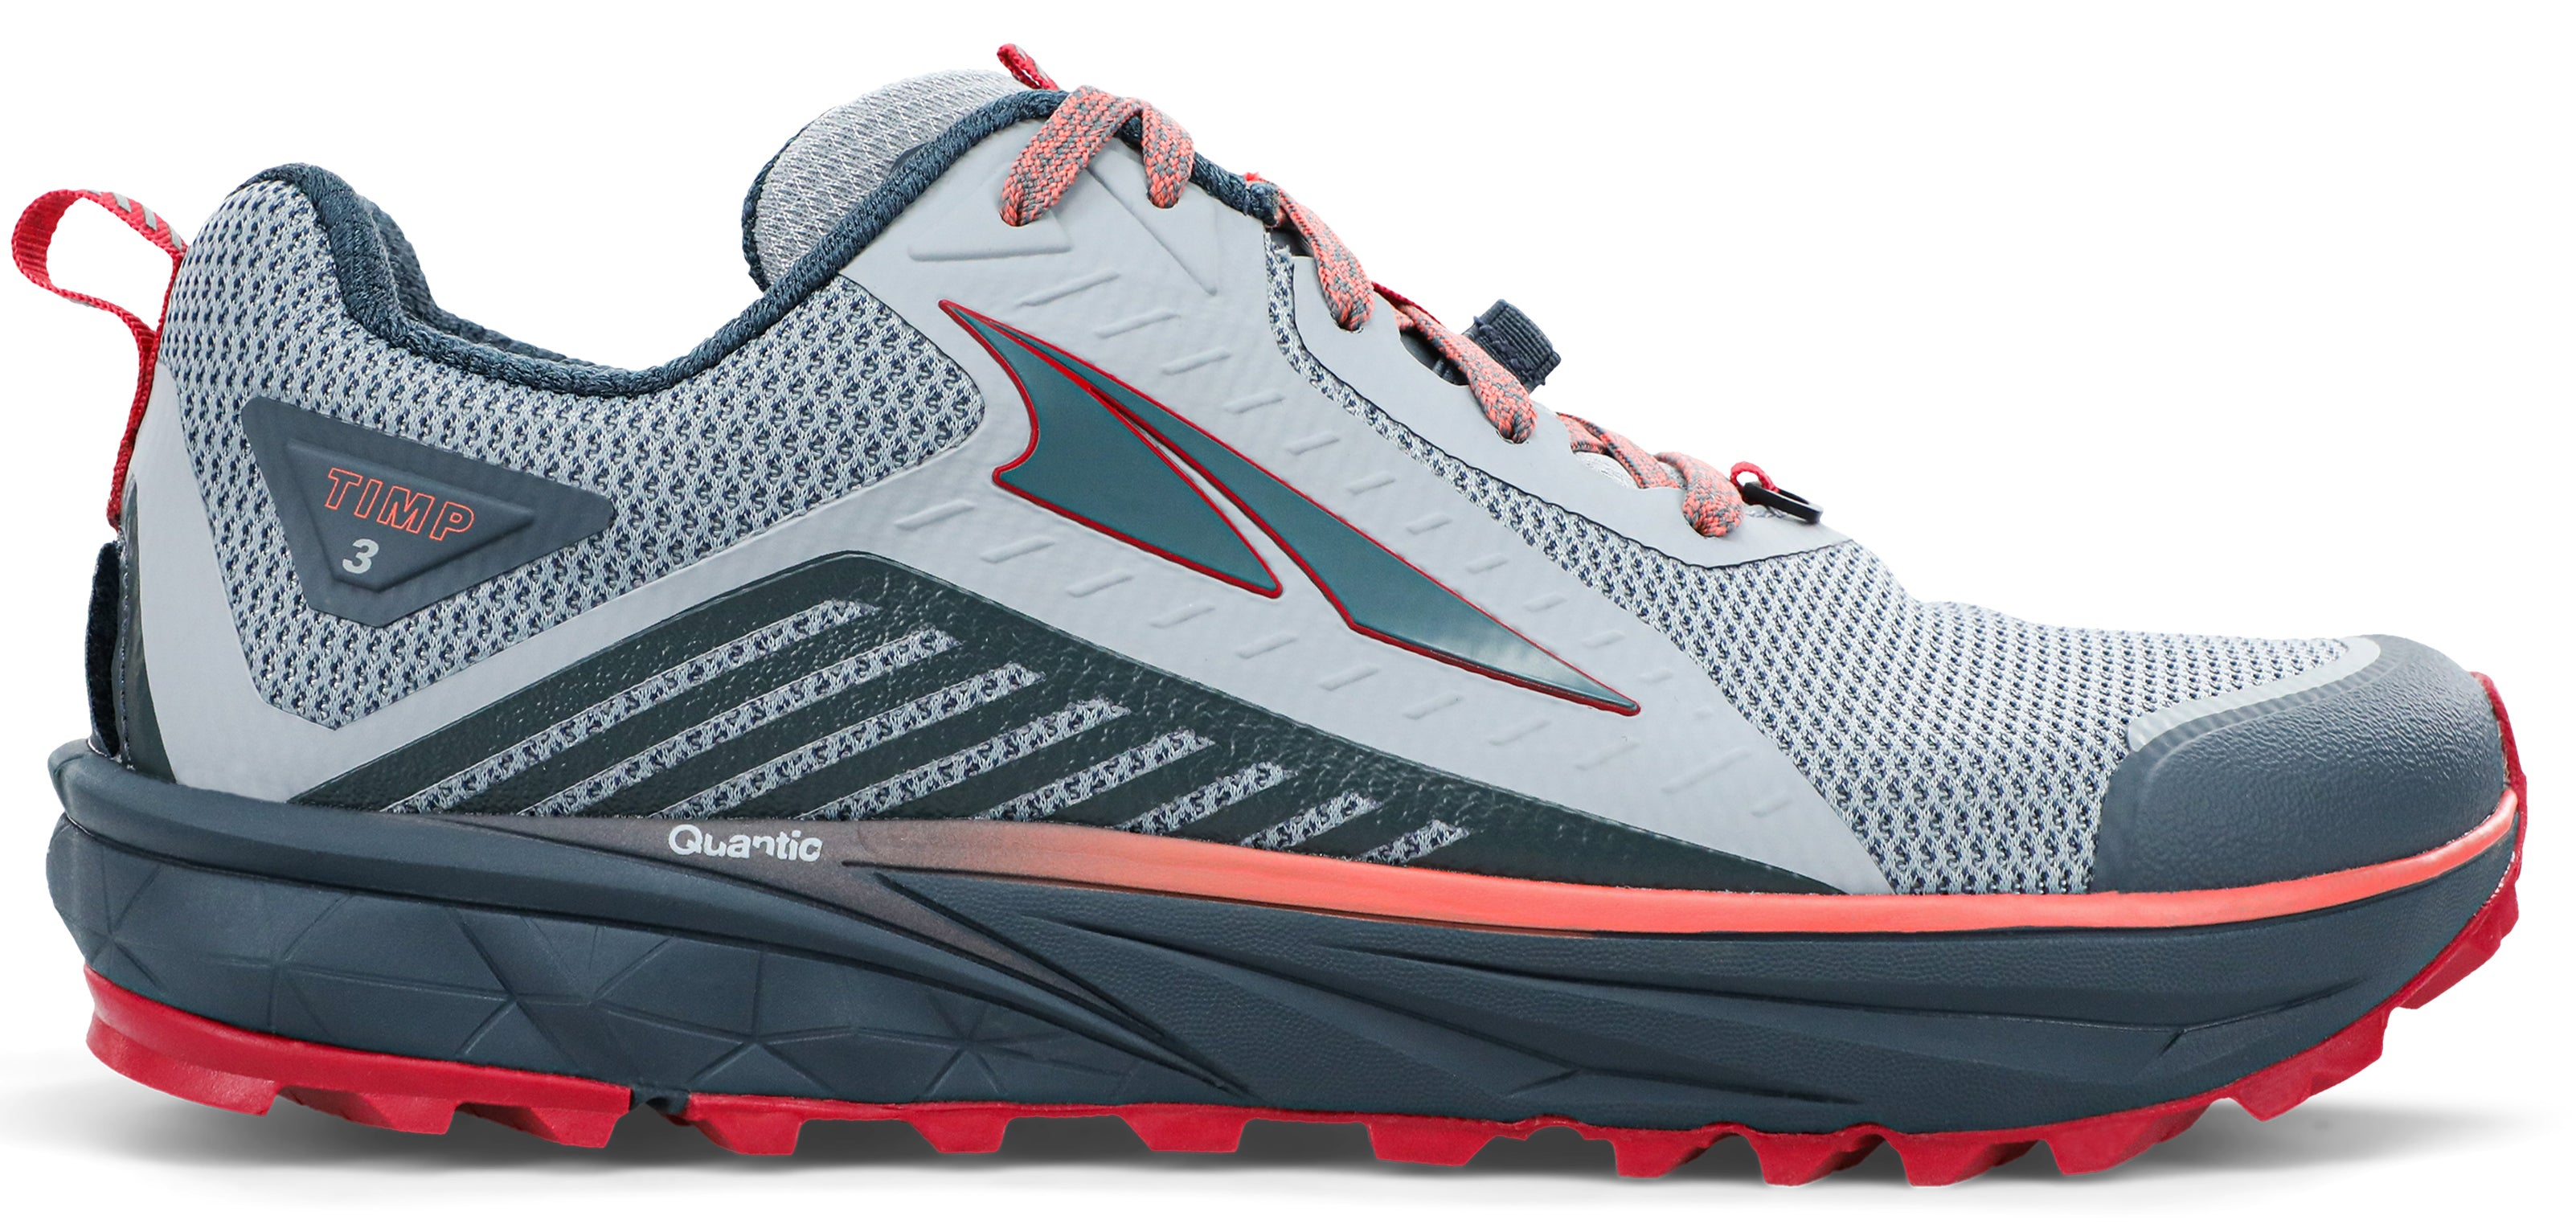 Women's Altra Timp 3 Trail Running Shoe in Gray/Pink from the side